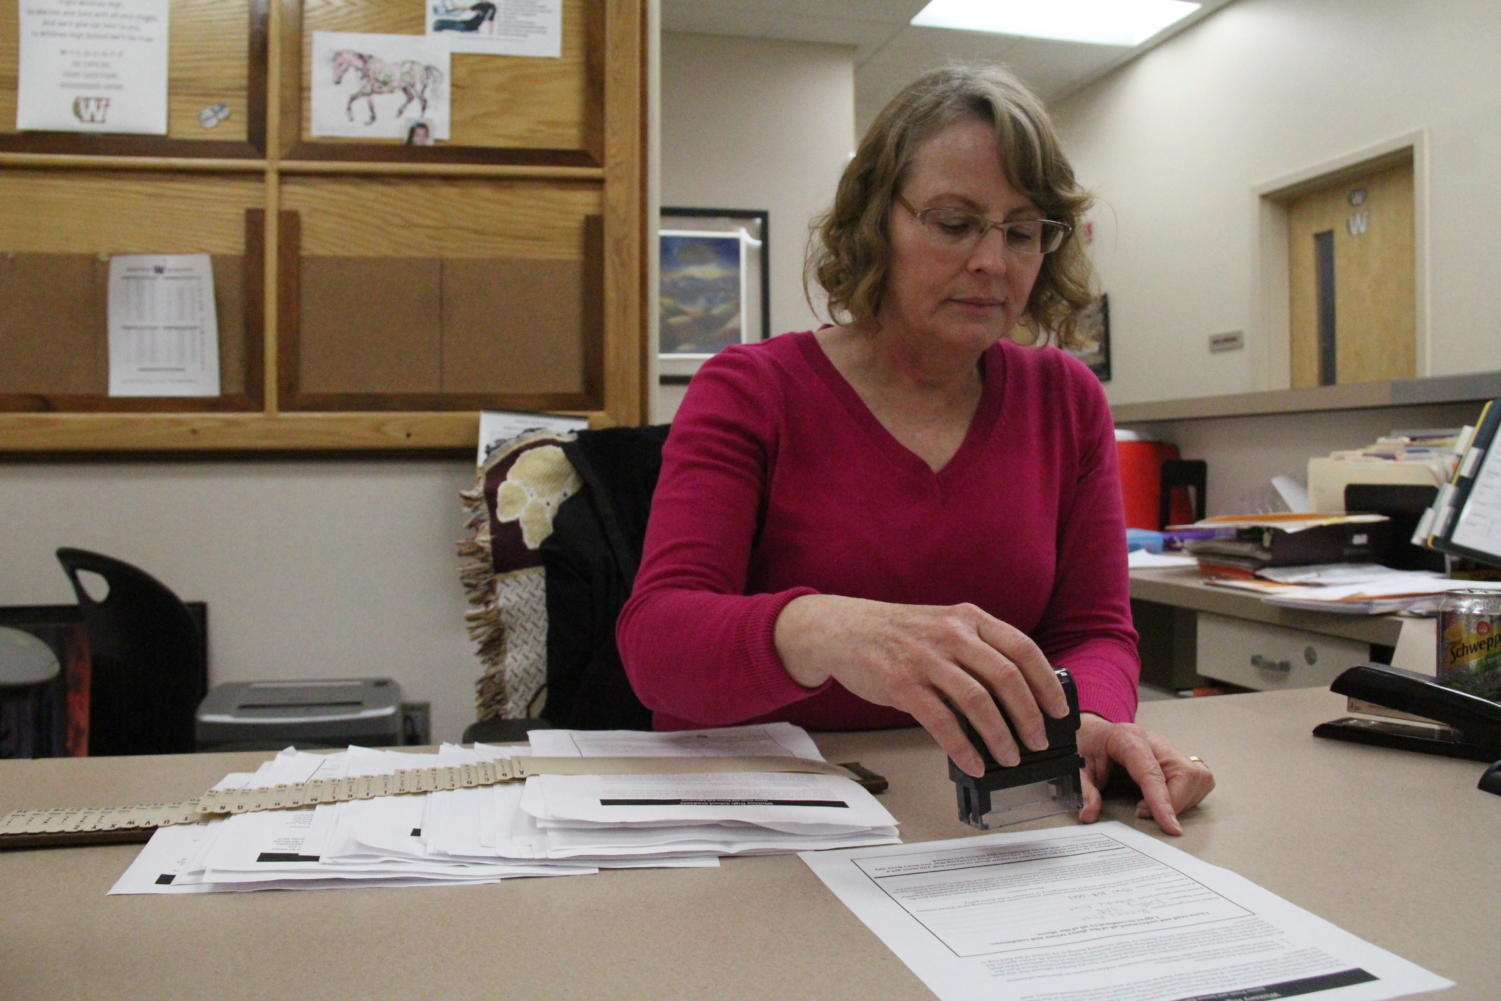 In the front office, Mrs. Pam Cano stamps the Senior Ball agreement form certifying that students do not have any detentions. Photo by Britney Flint.